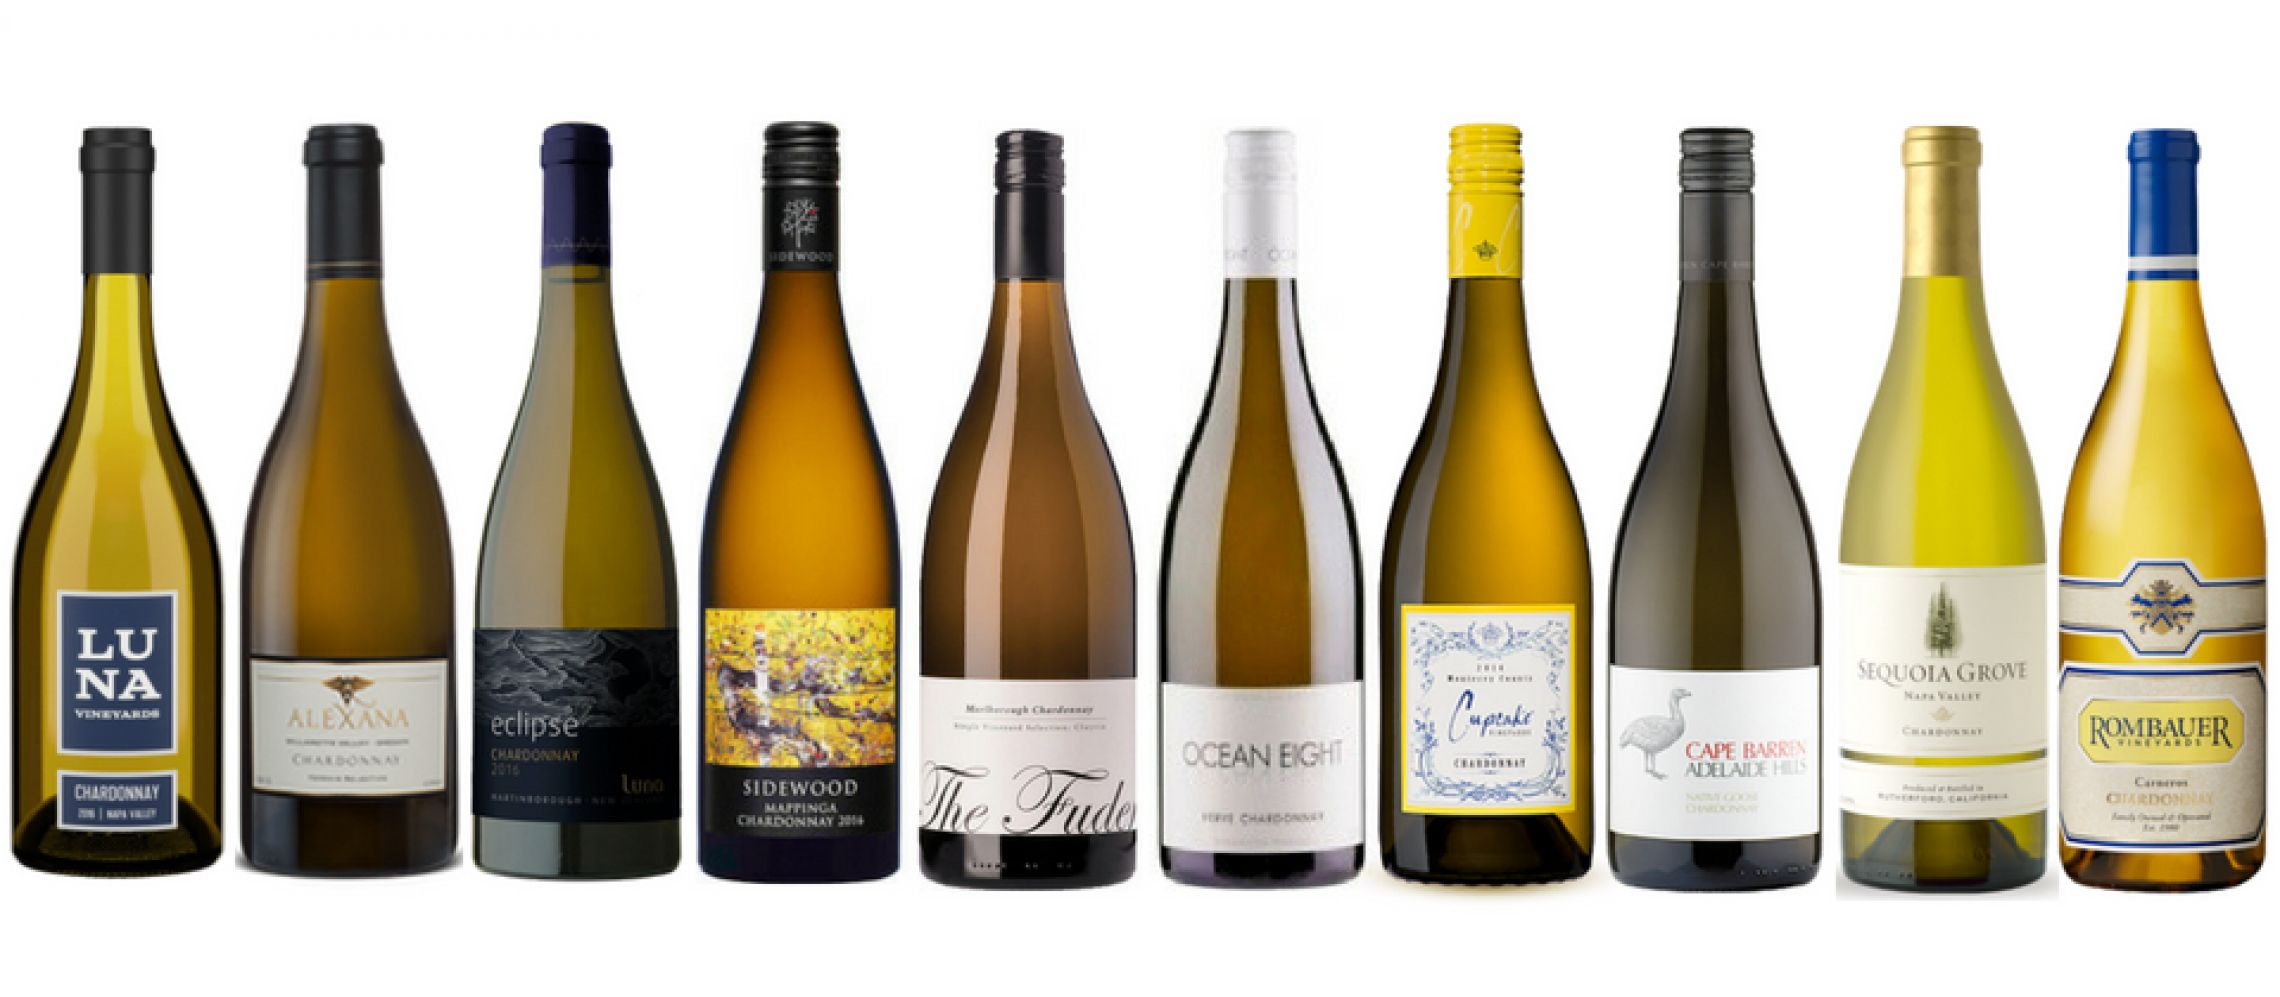 Photo for: Best Chardonnay Wines to Pair with Shrimp and Pasta